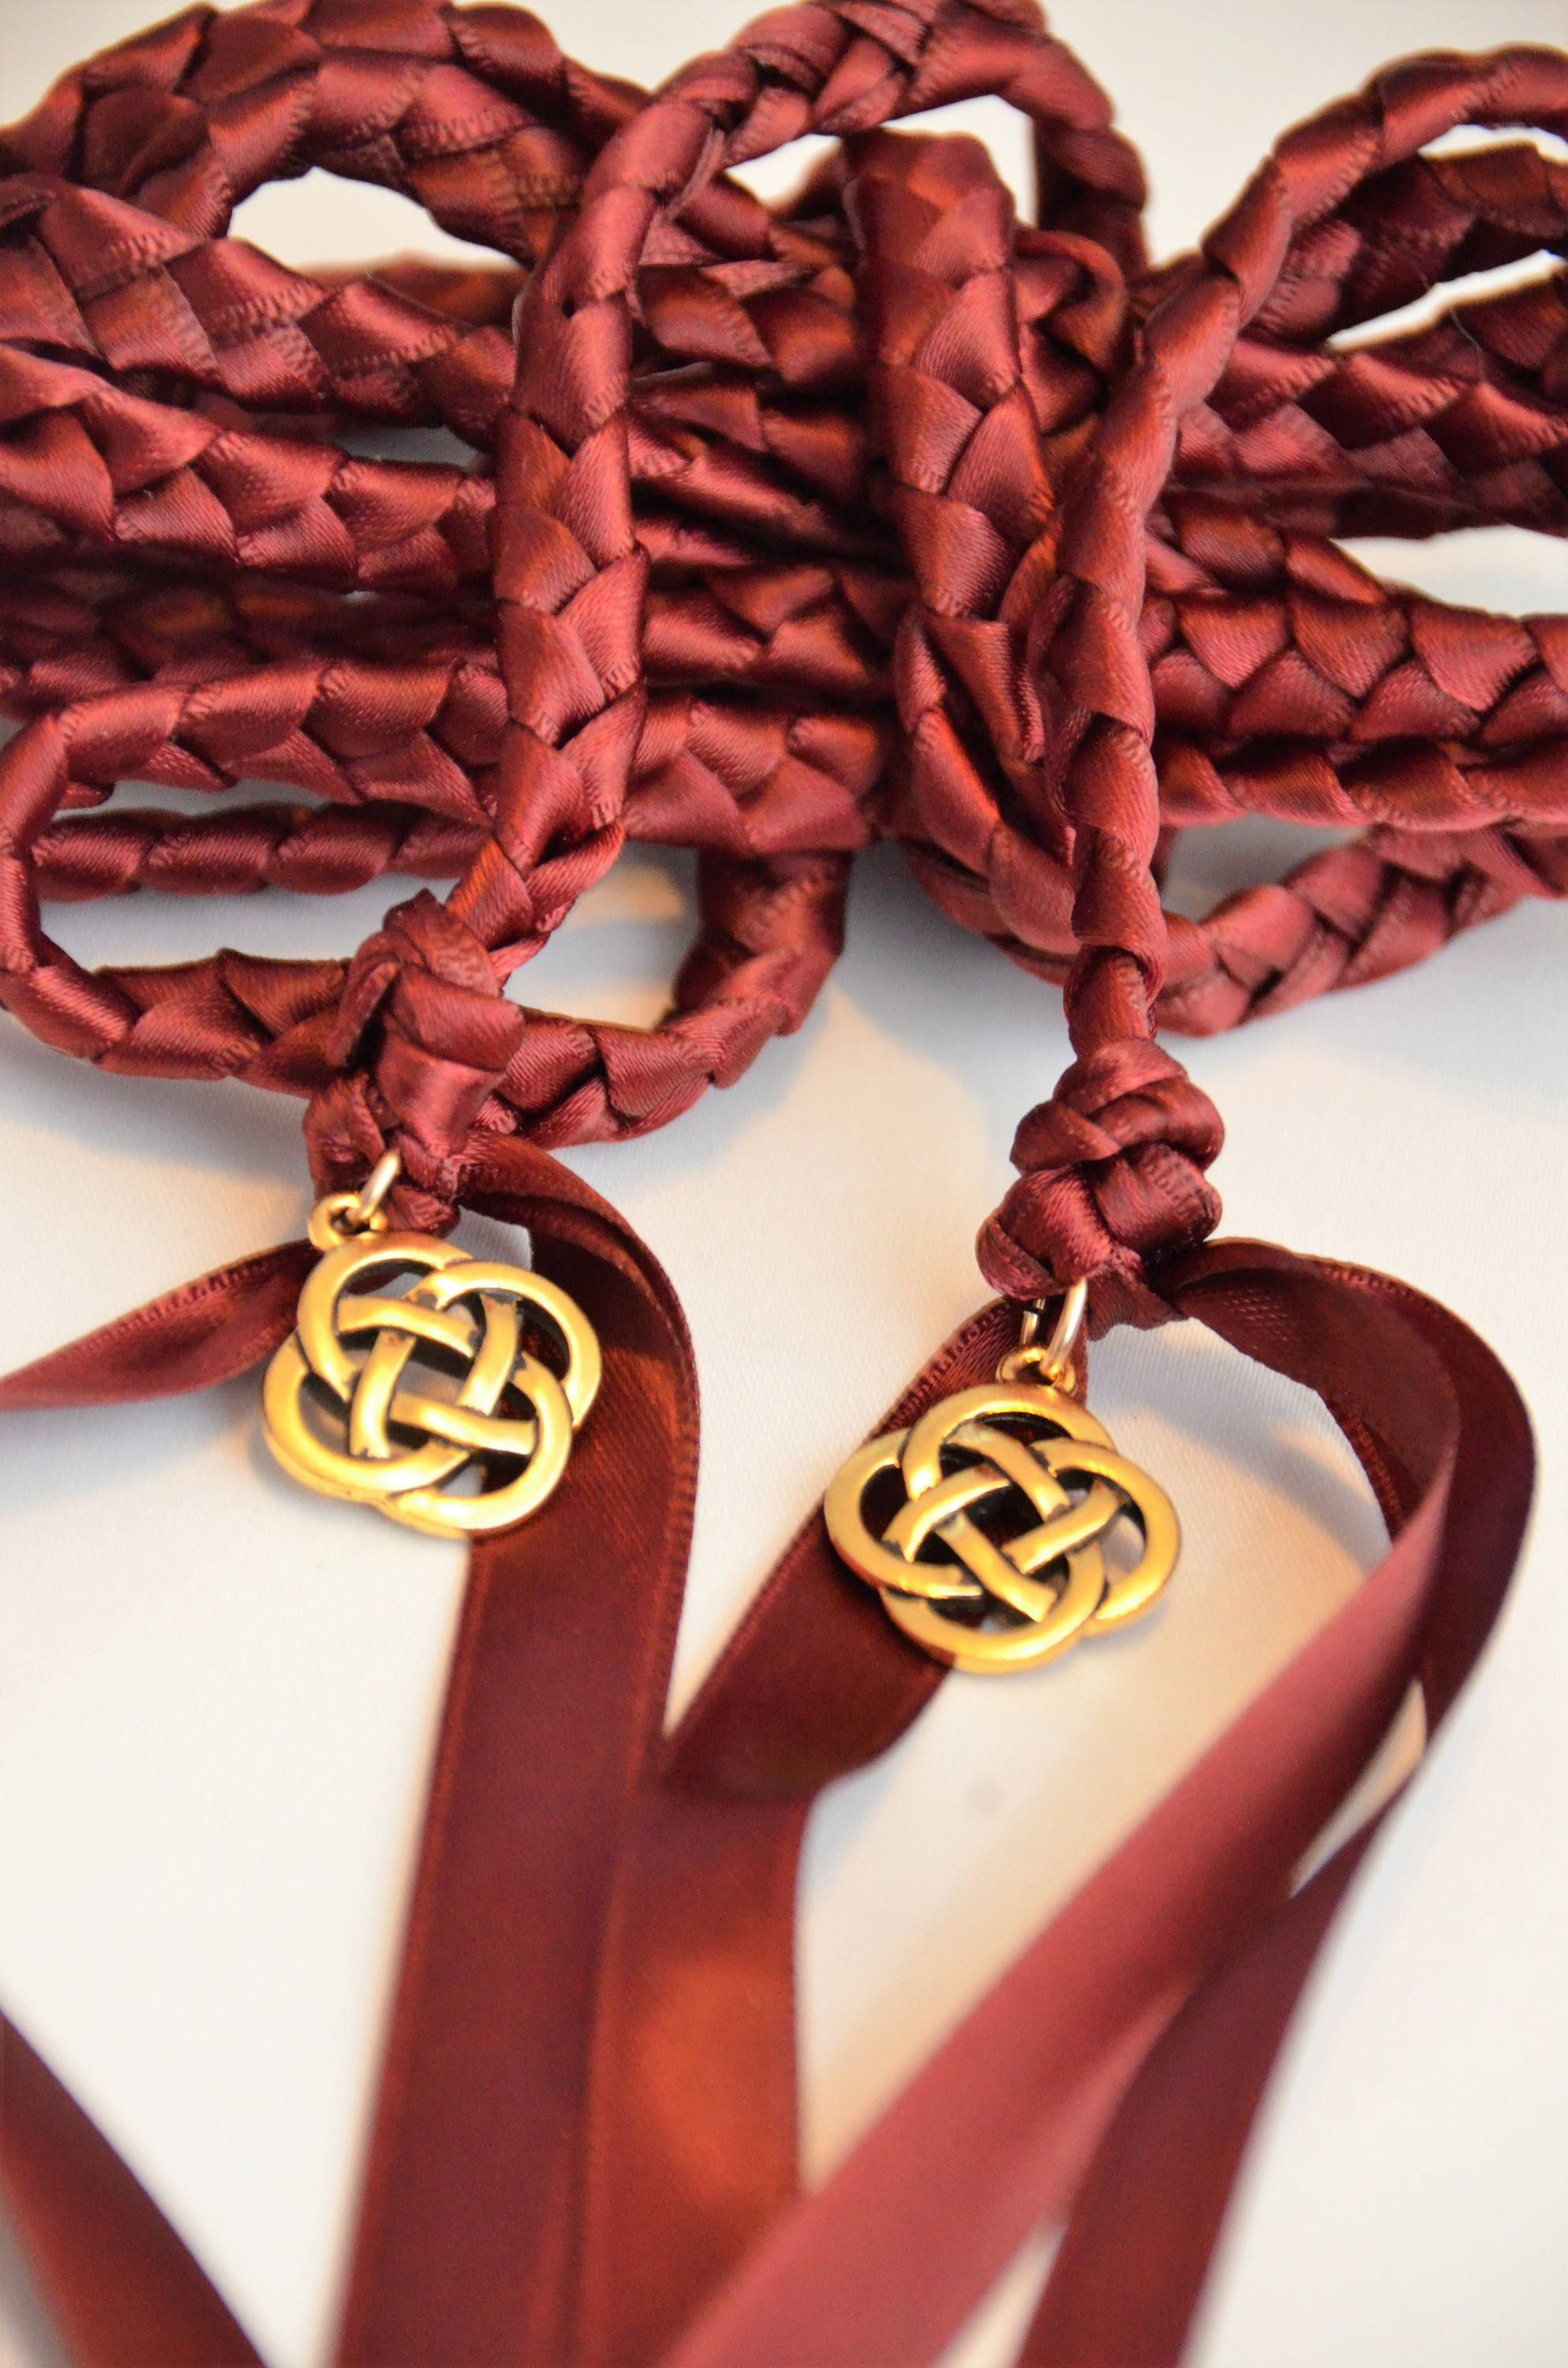 Burgundy Celtic Knot Wedding Hand Fasting Binding Cord Handfasting Tying The Ceremony Vows By Divinitybraid On Etsy